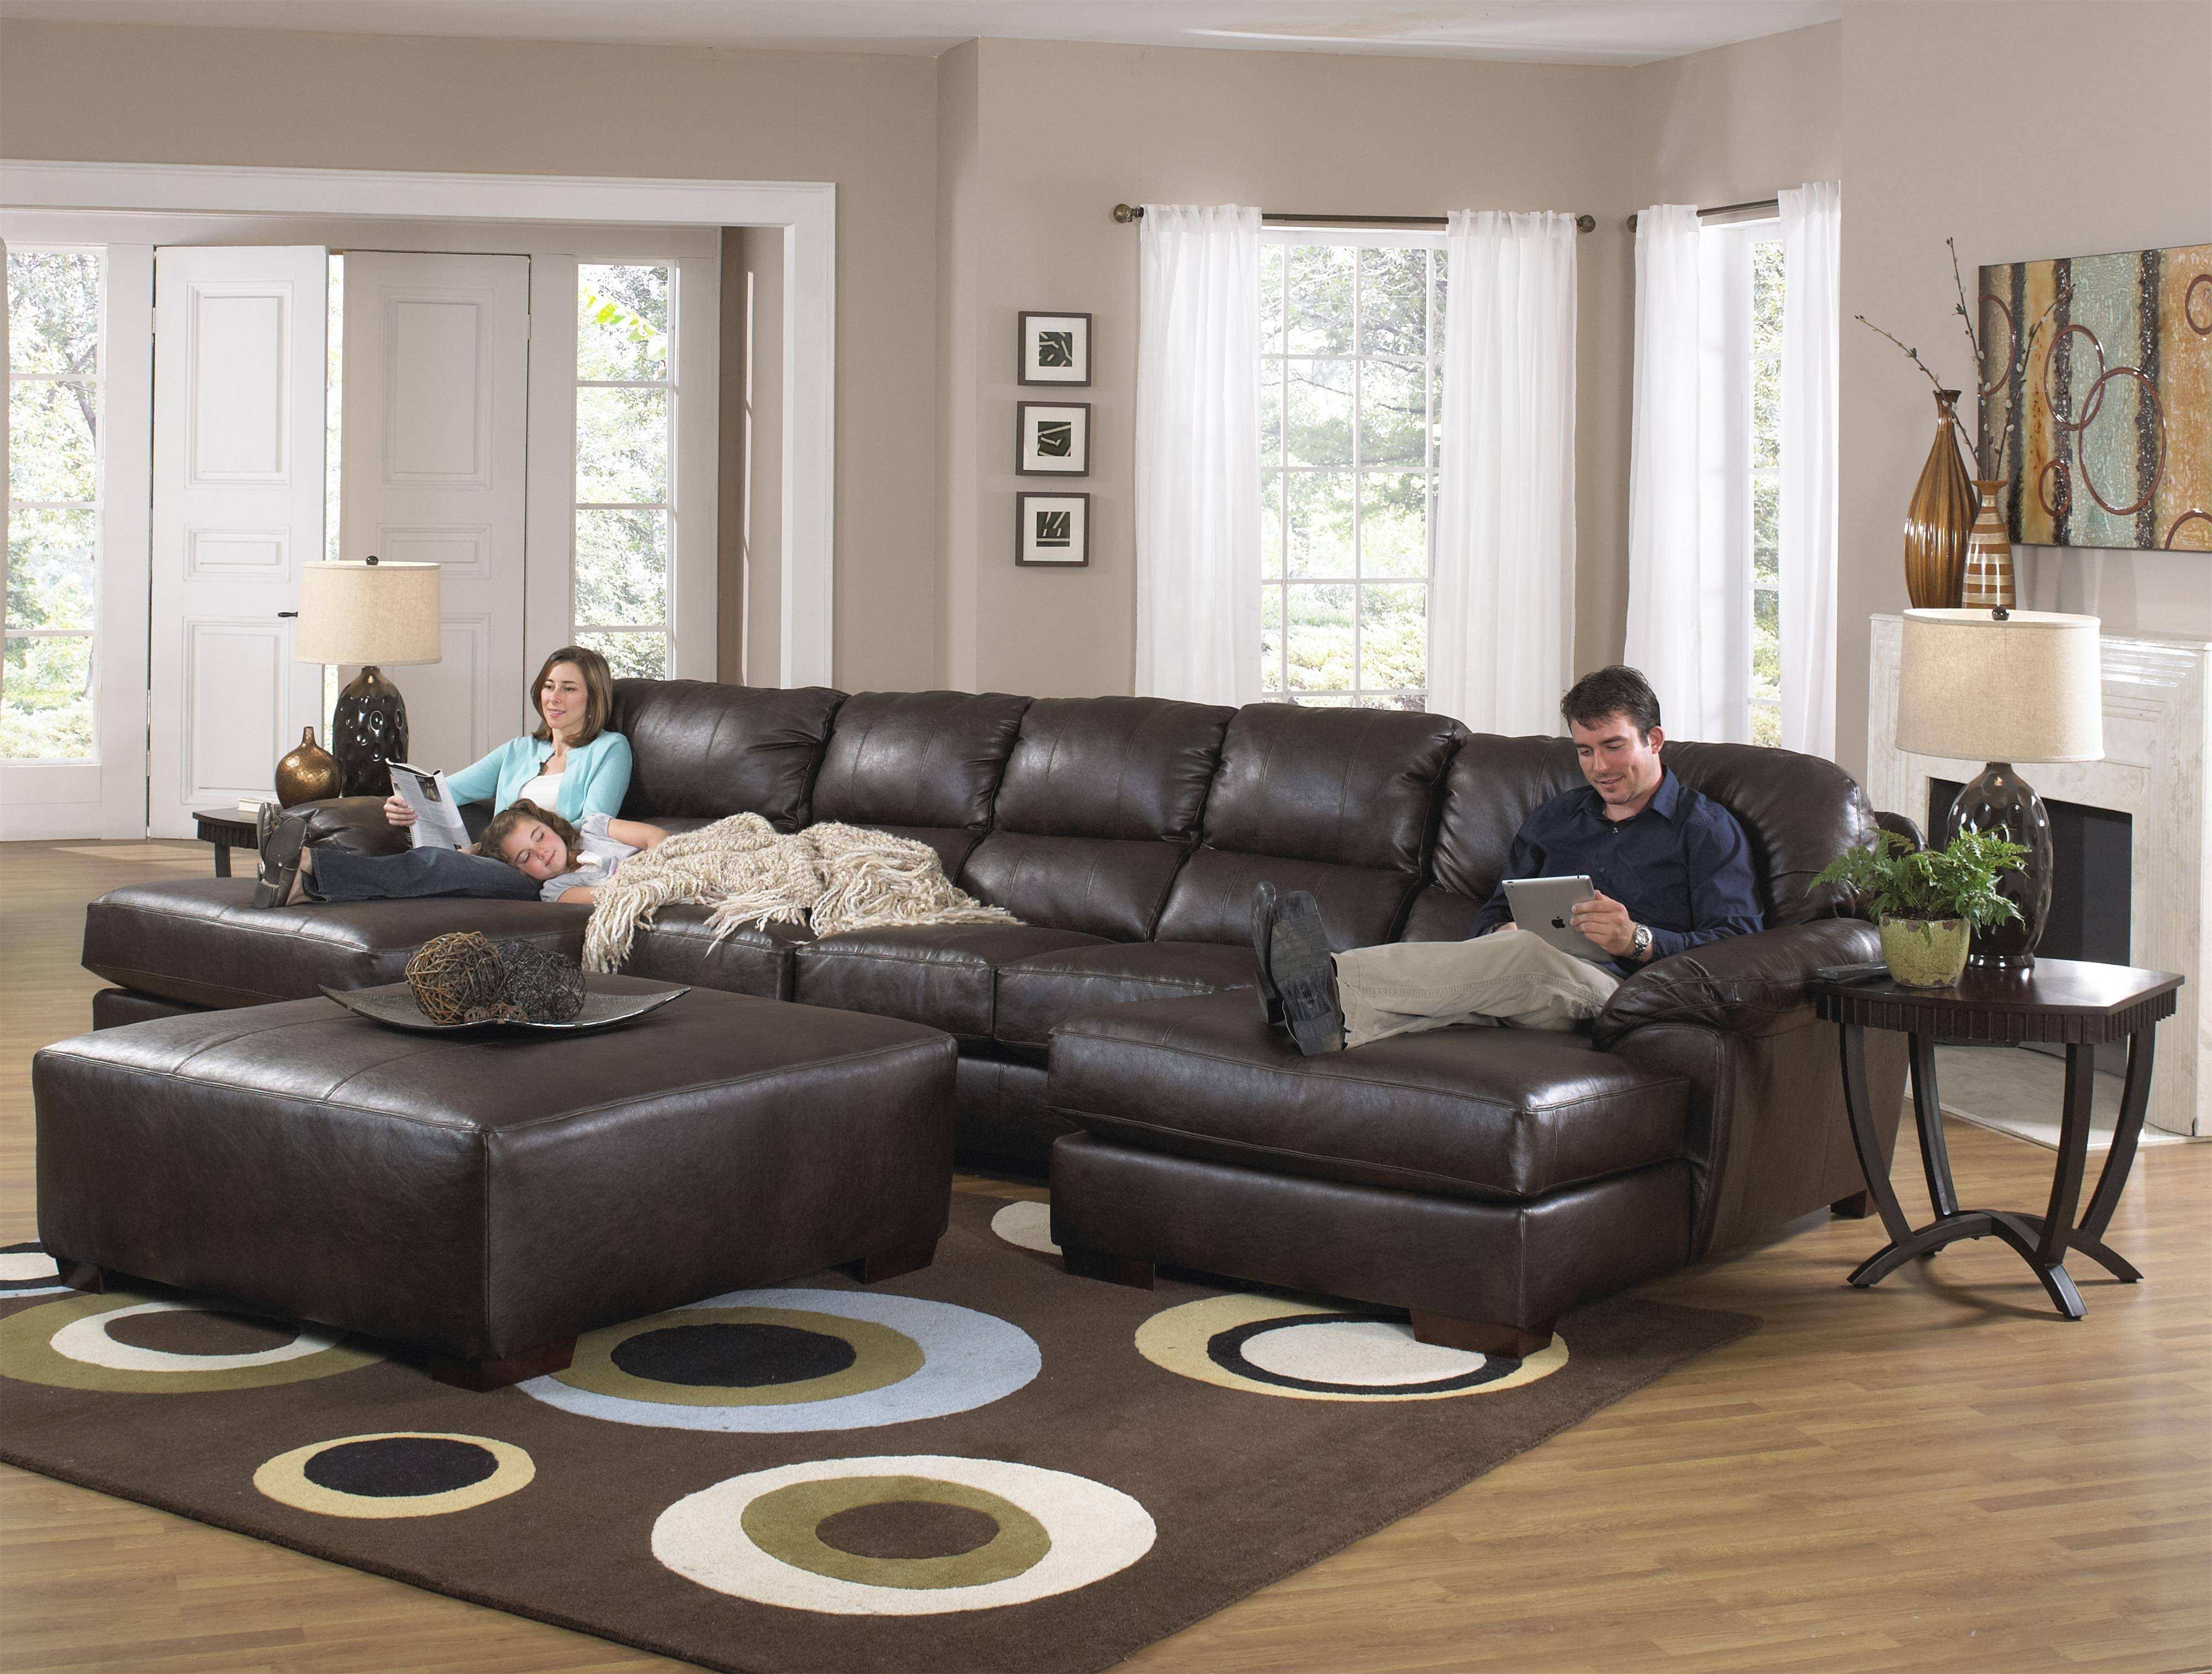 Jackson Furniture Lawson Three Seat Sectional Sofa With Console pertaining to Armless Sectional Sofa (Image 14 of 30)